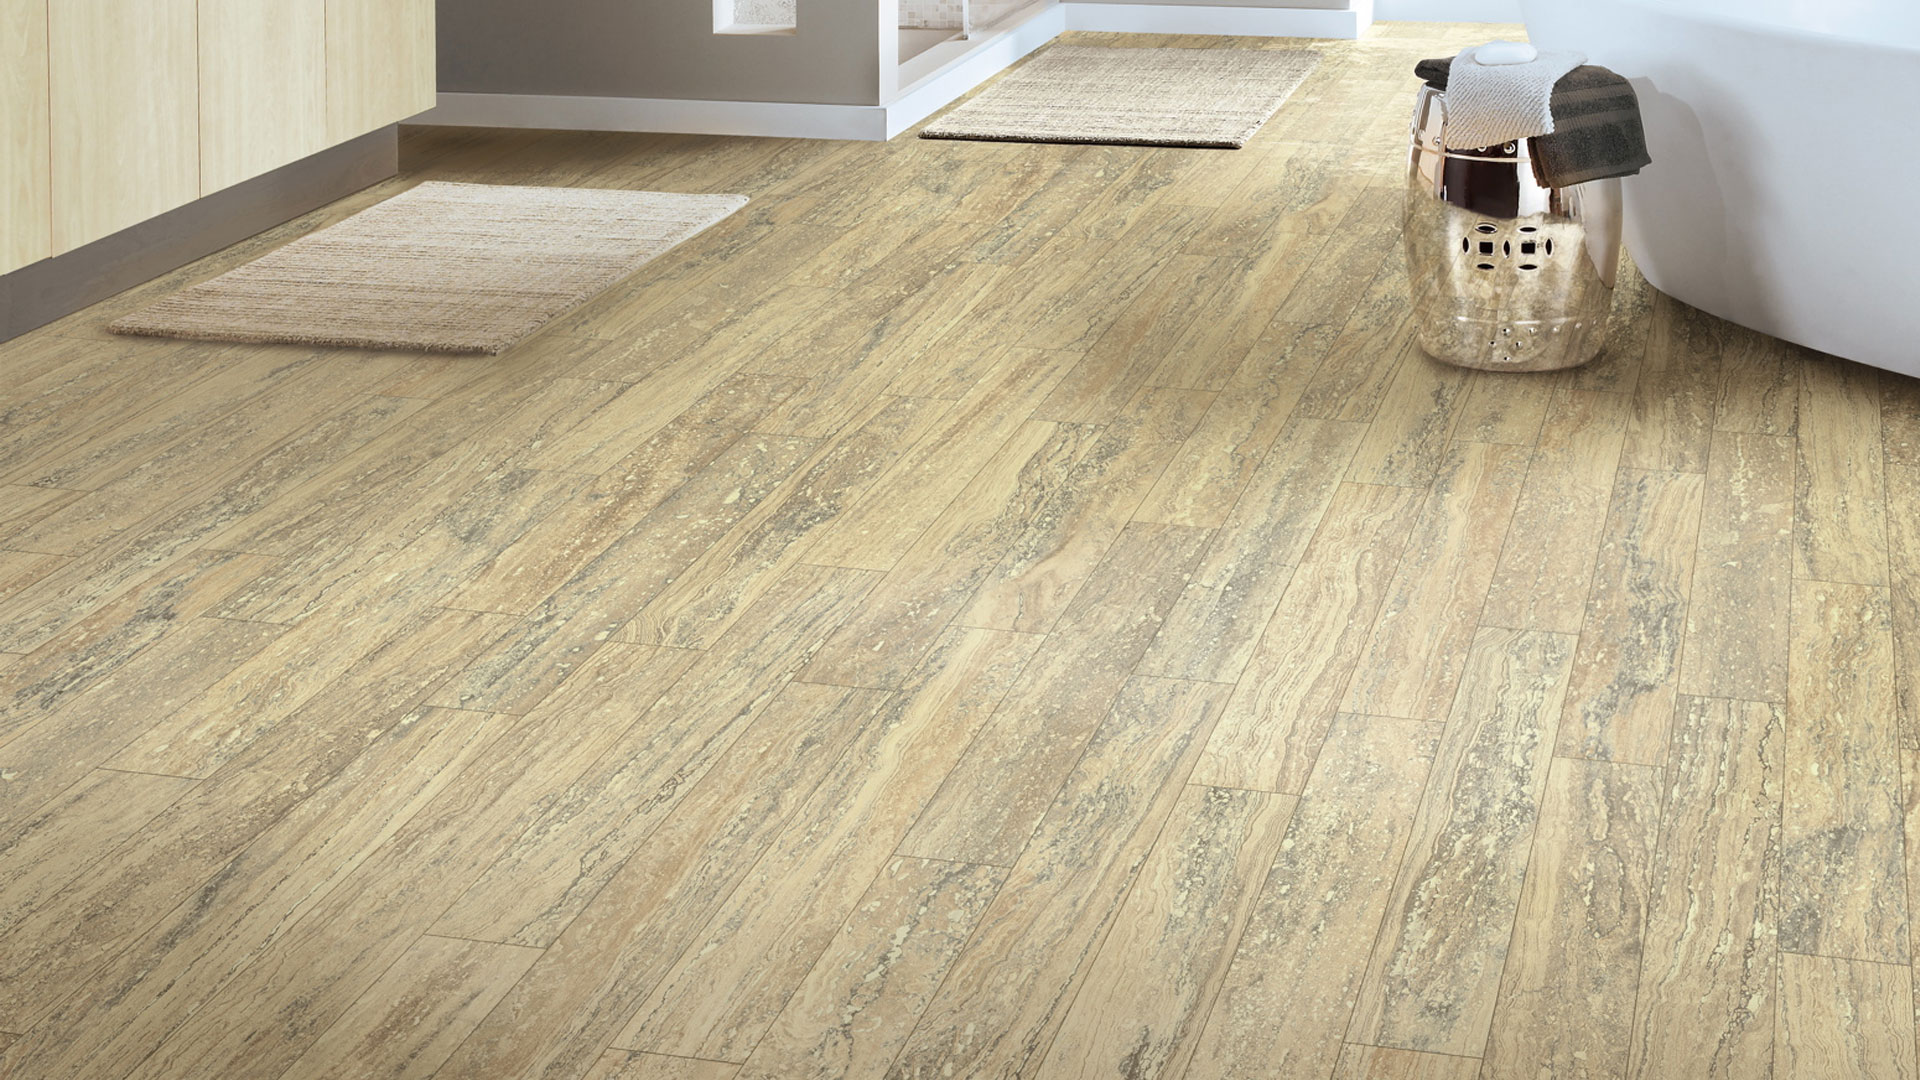 Resilient flooring vinyl sheet floors from armstrong for Pvc hardwood flooring